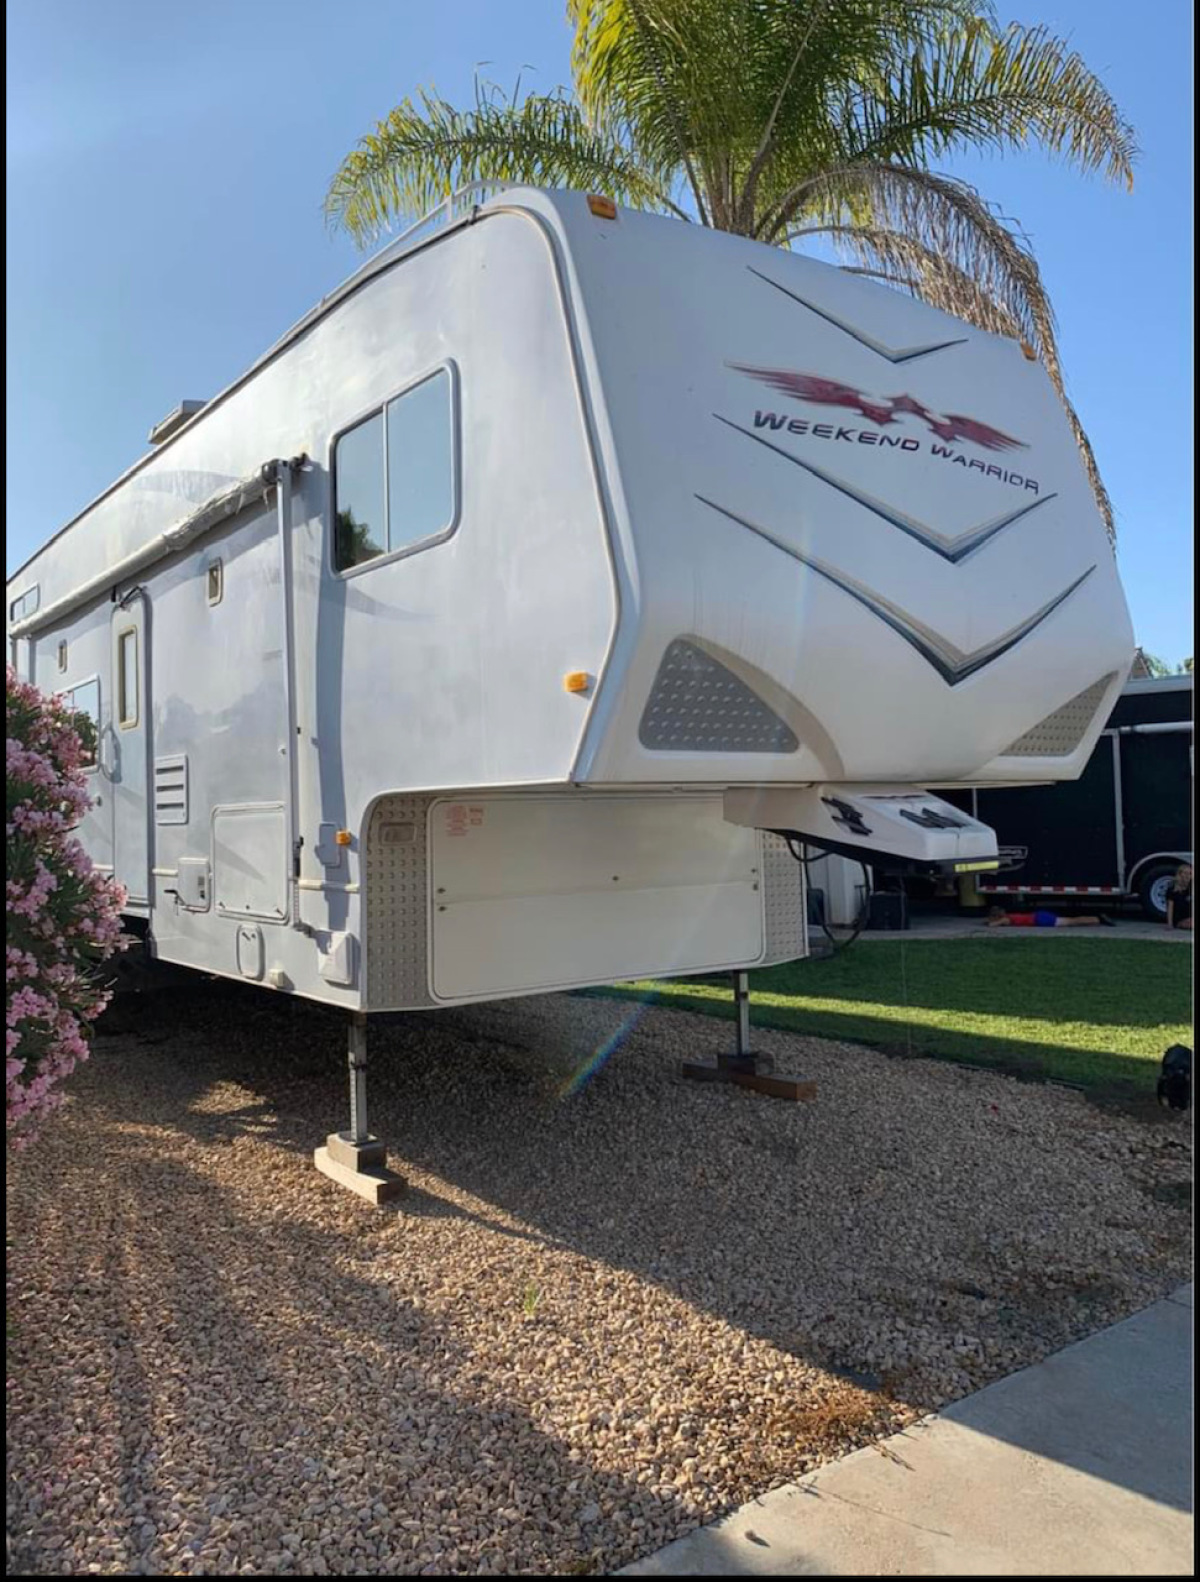 For Sale: 2008 WEEKEND WARRIOR 16FT GARAGE MODEL!!  PRICED TO SELL FAST - photo1